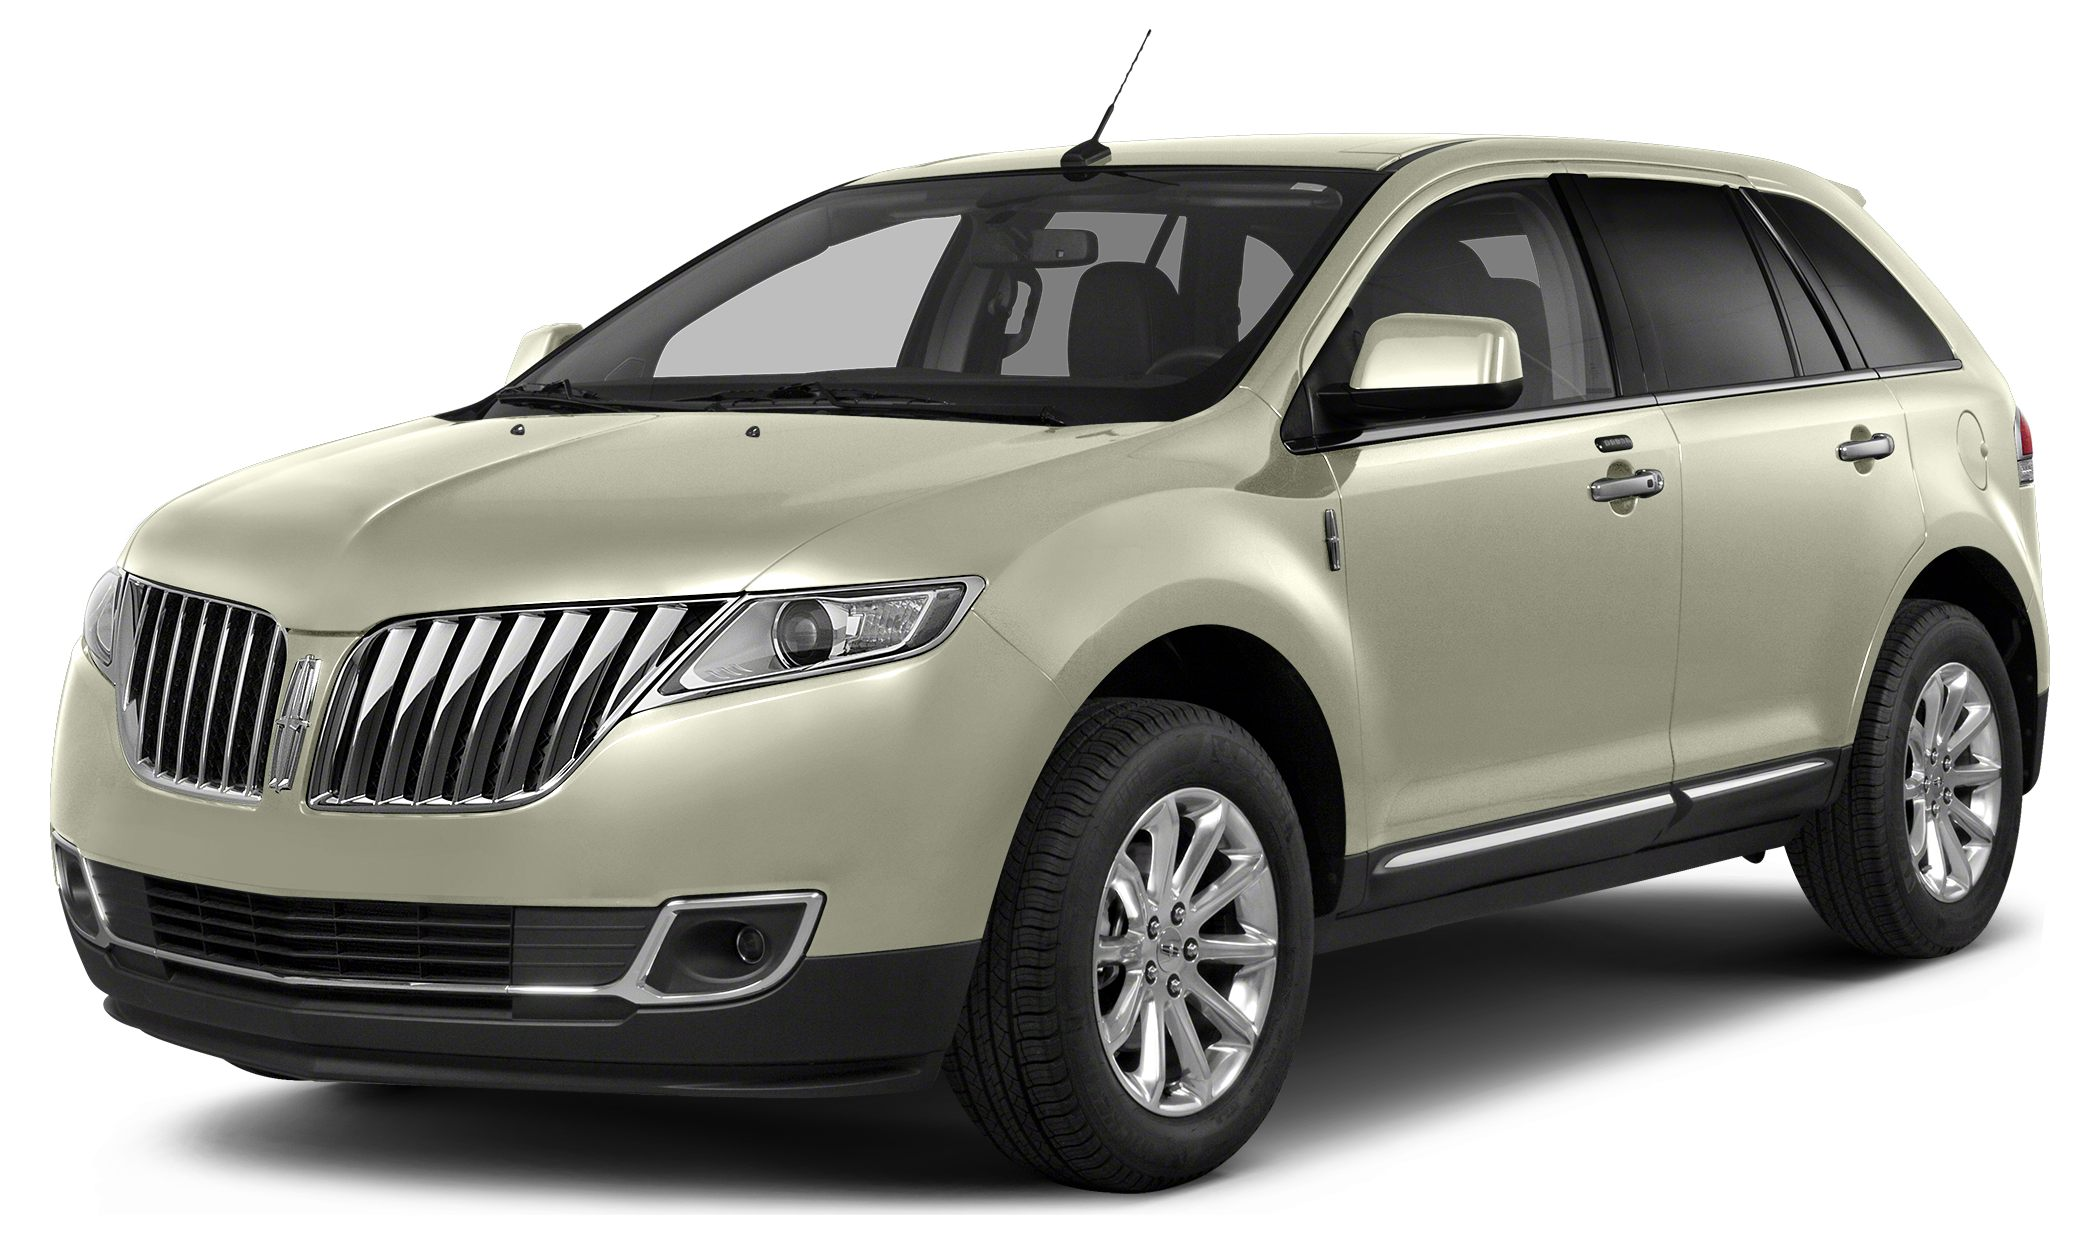 2013 Lincoln MKX Base BUY WITH CONFIDENCE CARFAX 1-Owner MKX and CARFAX Buyback Guarantee qualifi